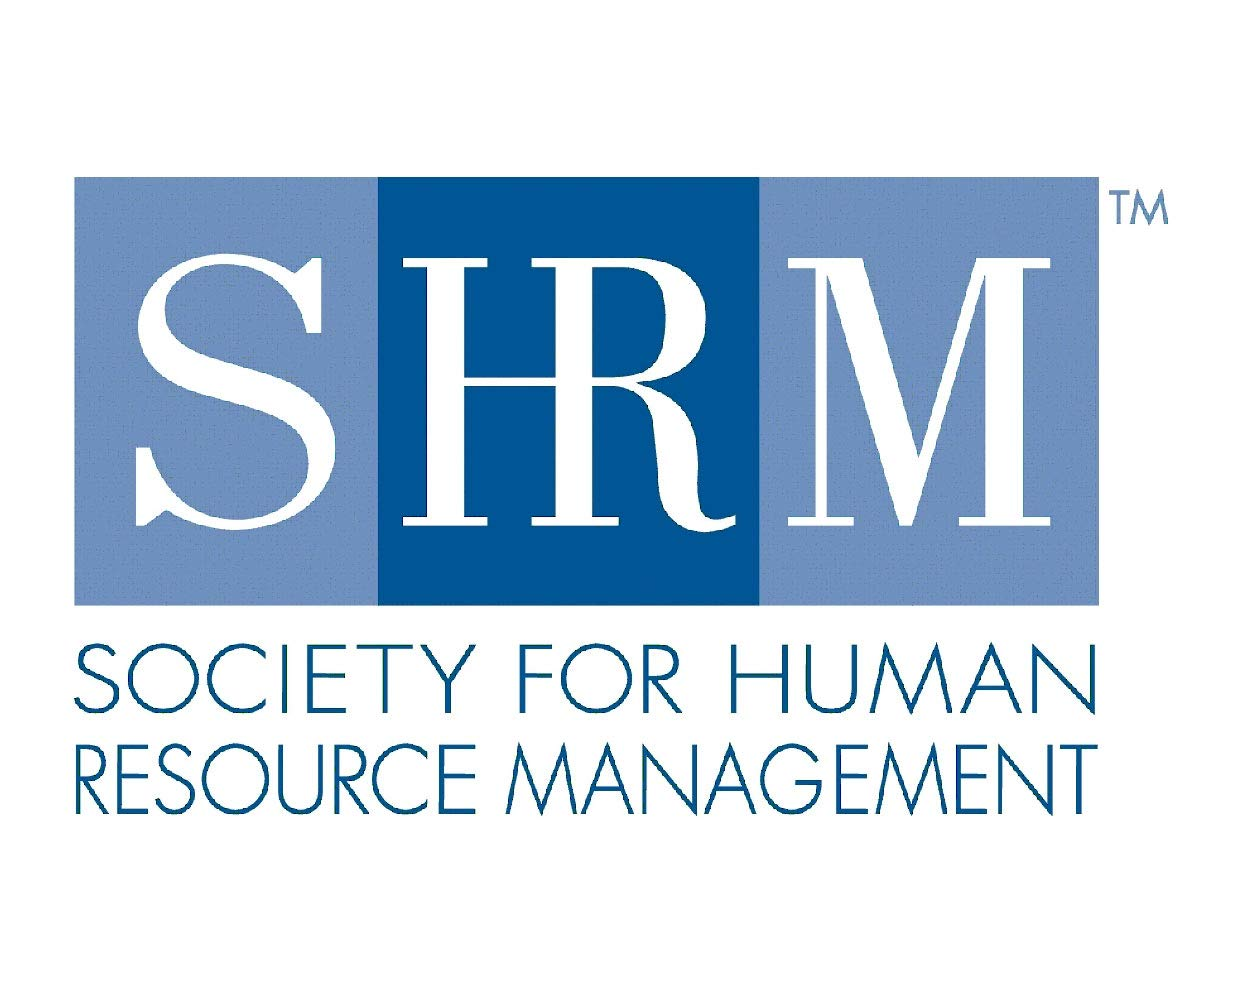 SPHR Certification Questions Senior Professional In Human Resources And PHR Exam Phr And Sphr Exam Questions  SPHR Study SPHR Certification Questions ... Human Resources   PHR Exam  English Edition